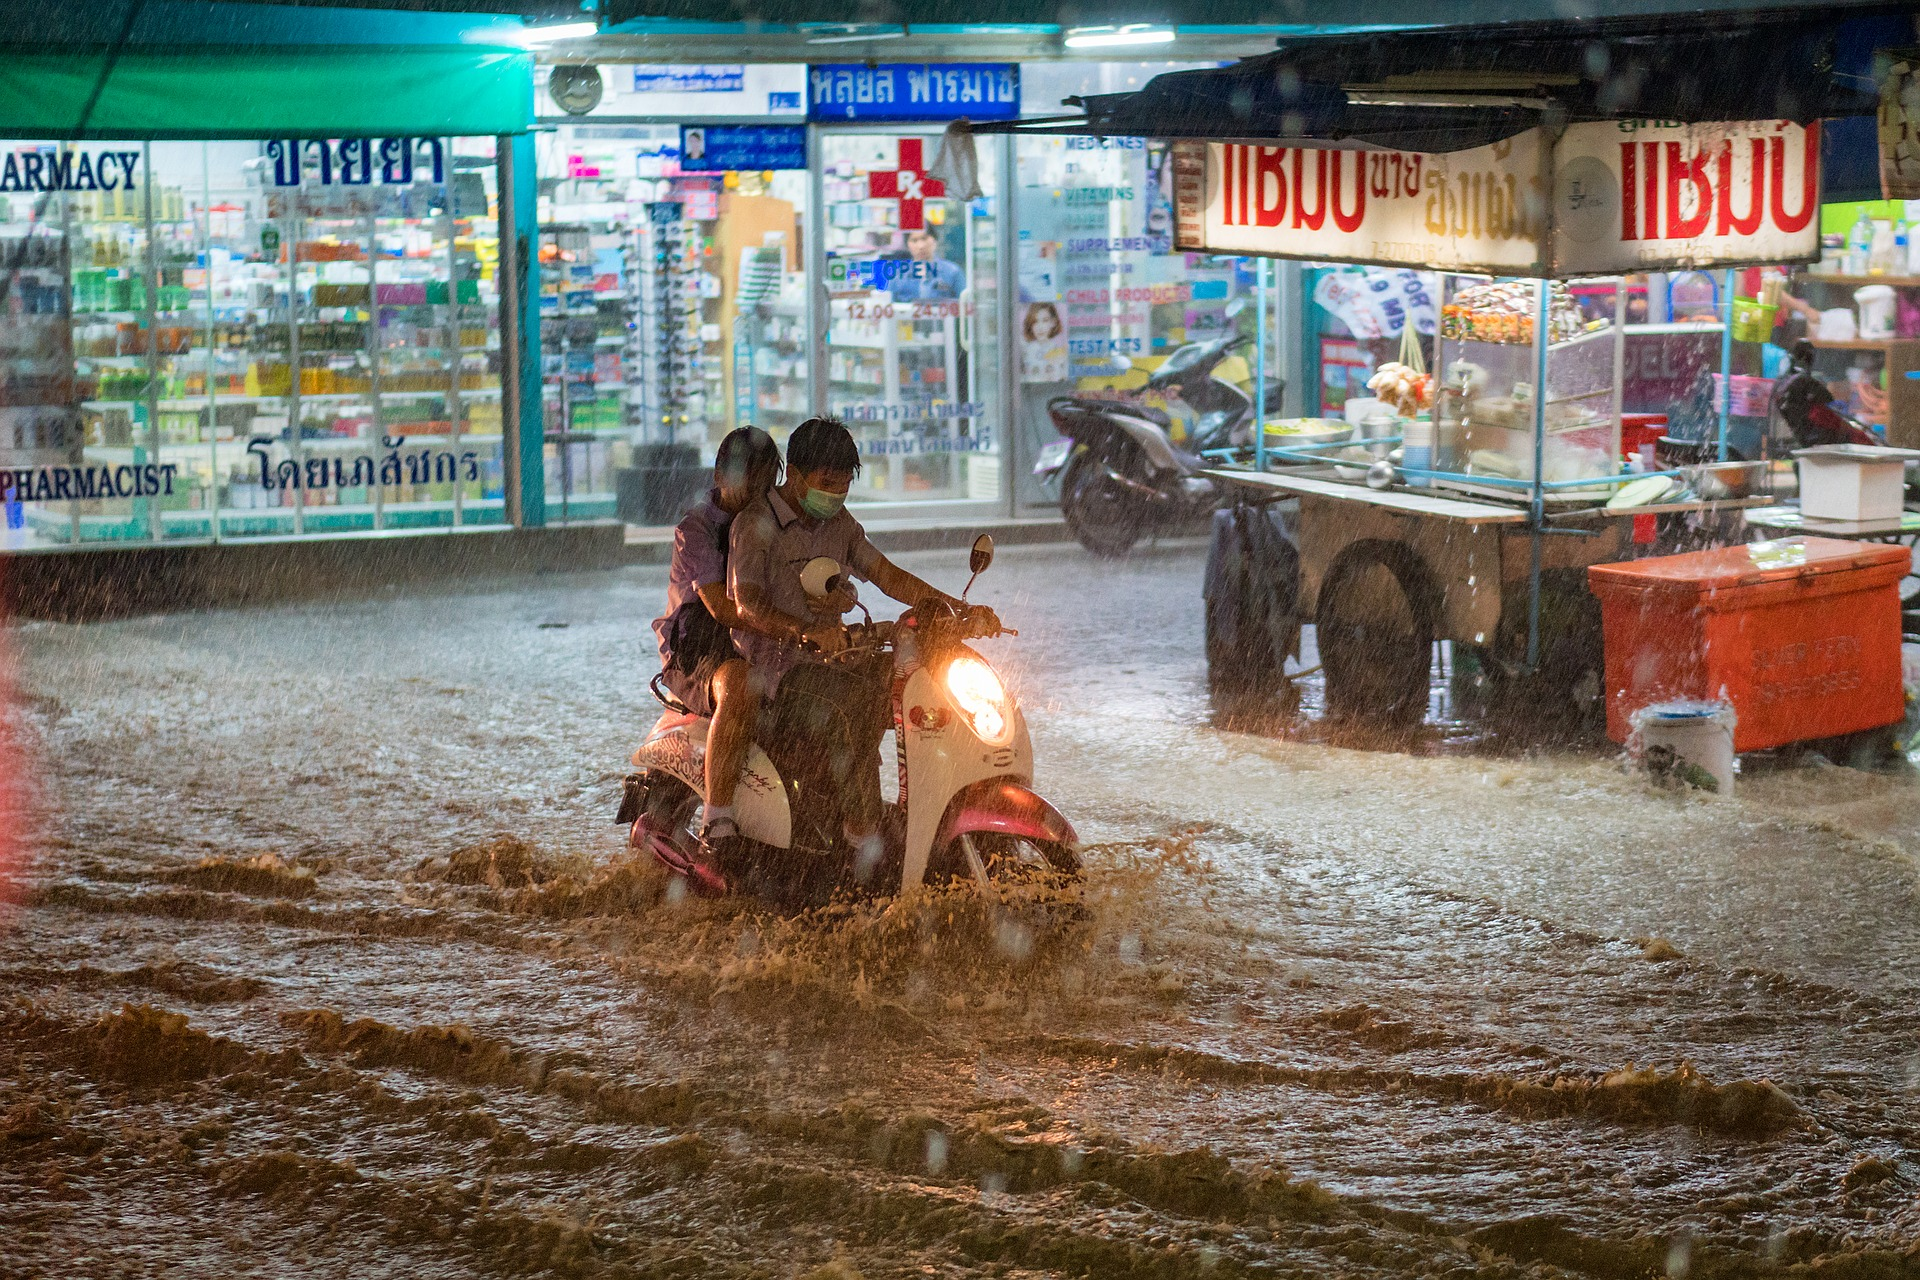 Street fuul of water after rain in Thailand